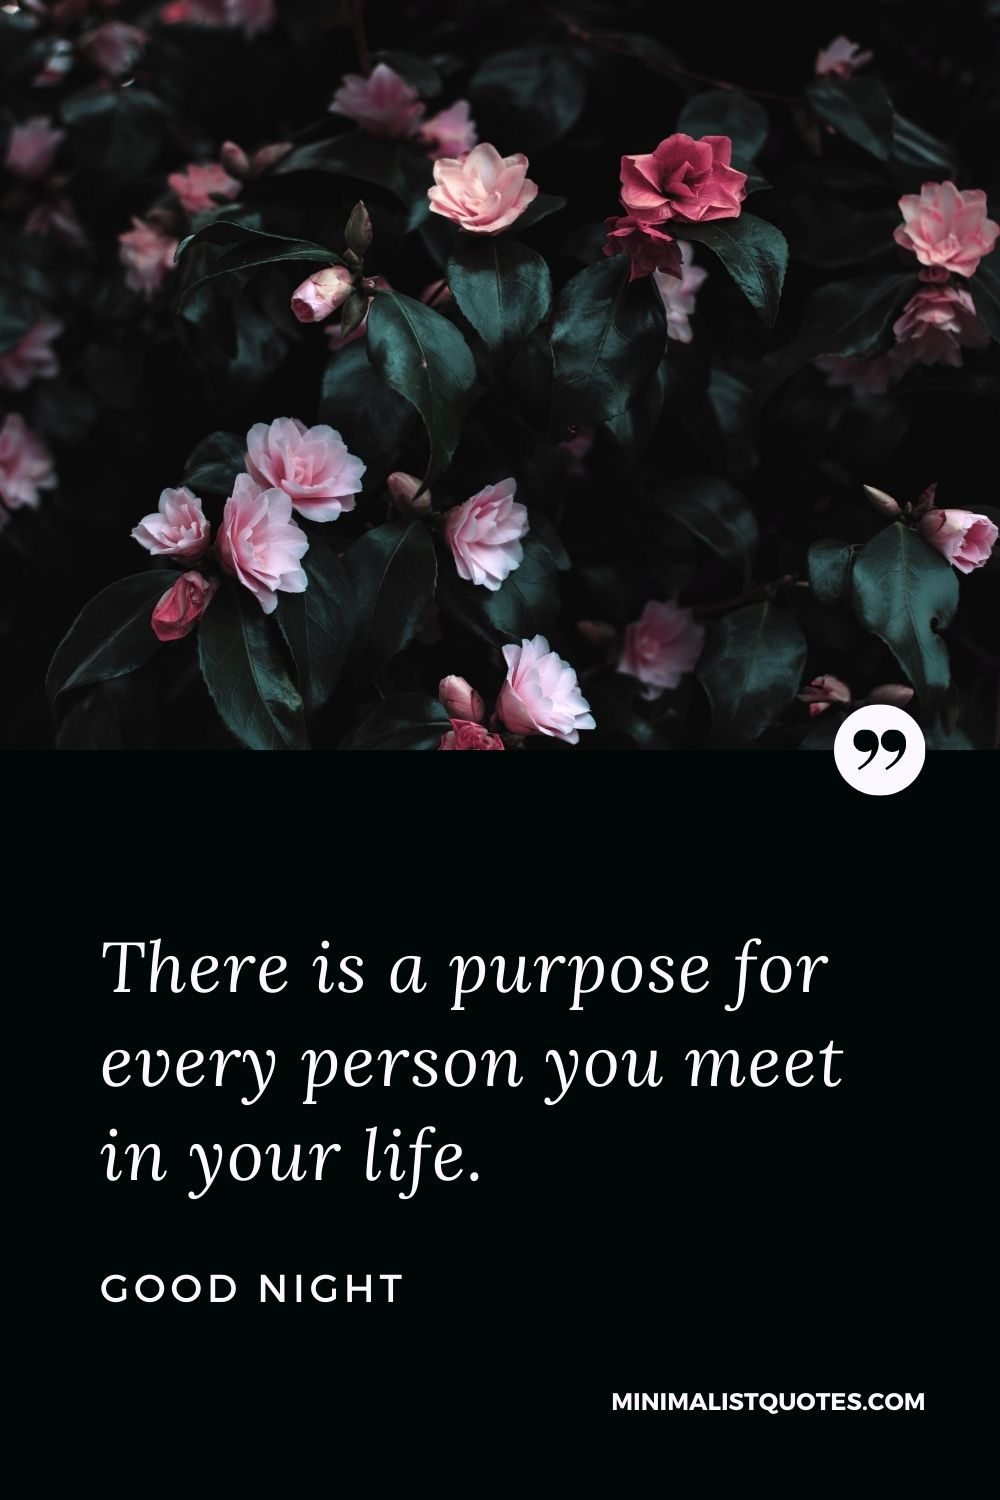 Good Night Wish & Message With Image: There is a purpose for every person you meet in your life.